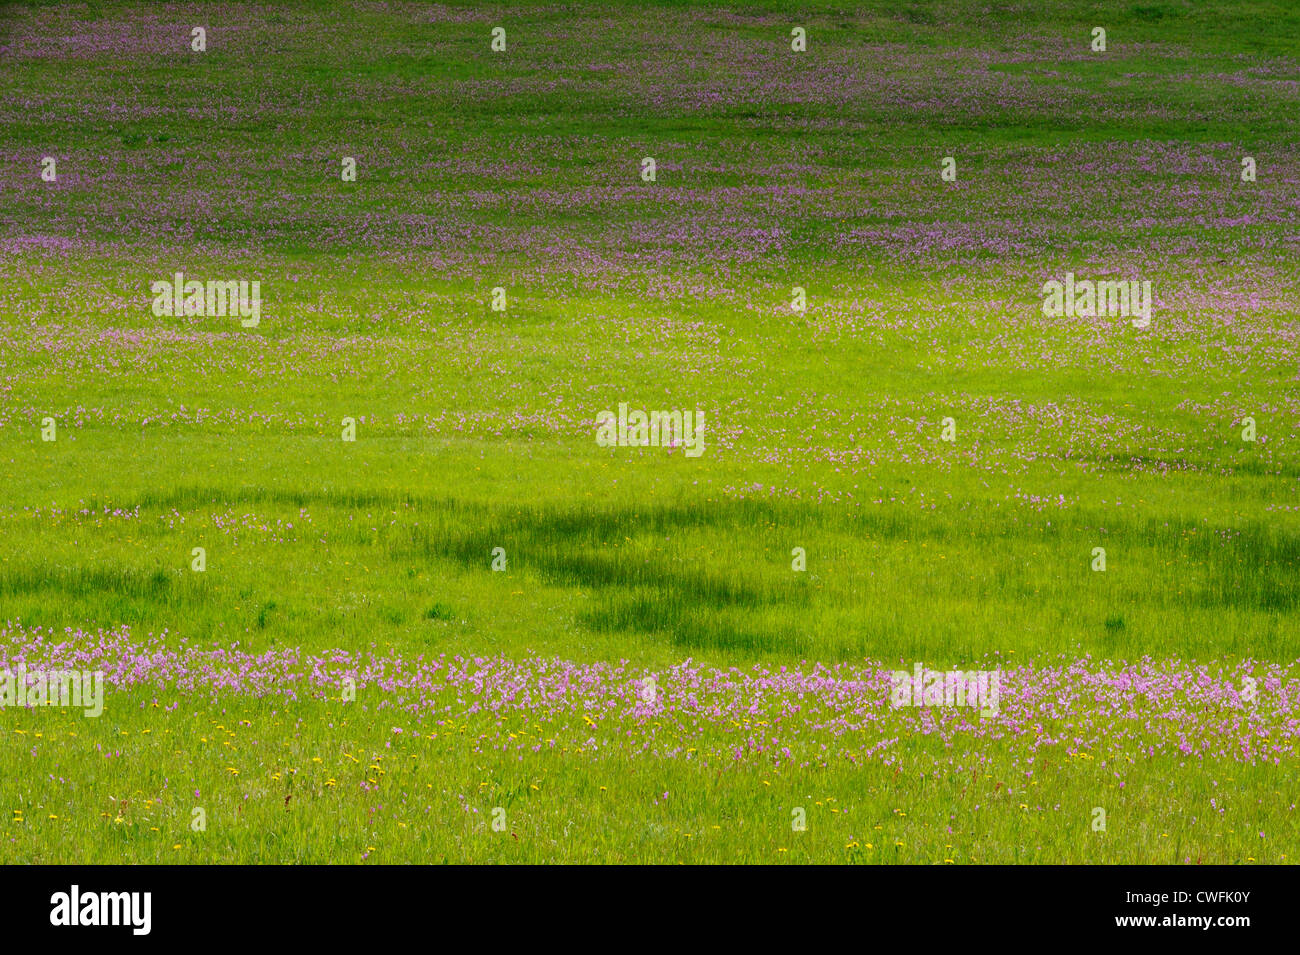 Shooting stars in bloom in pasture, Bozeman, Montana, USA Stock Photo